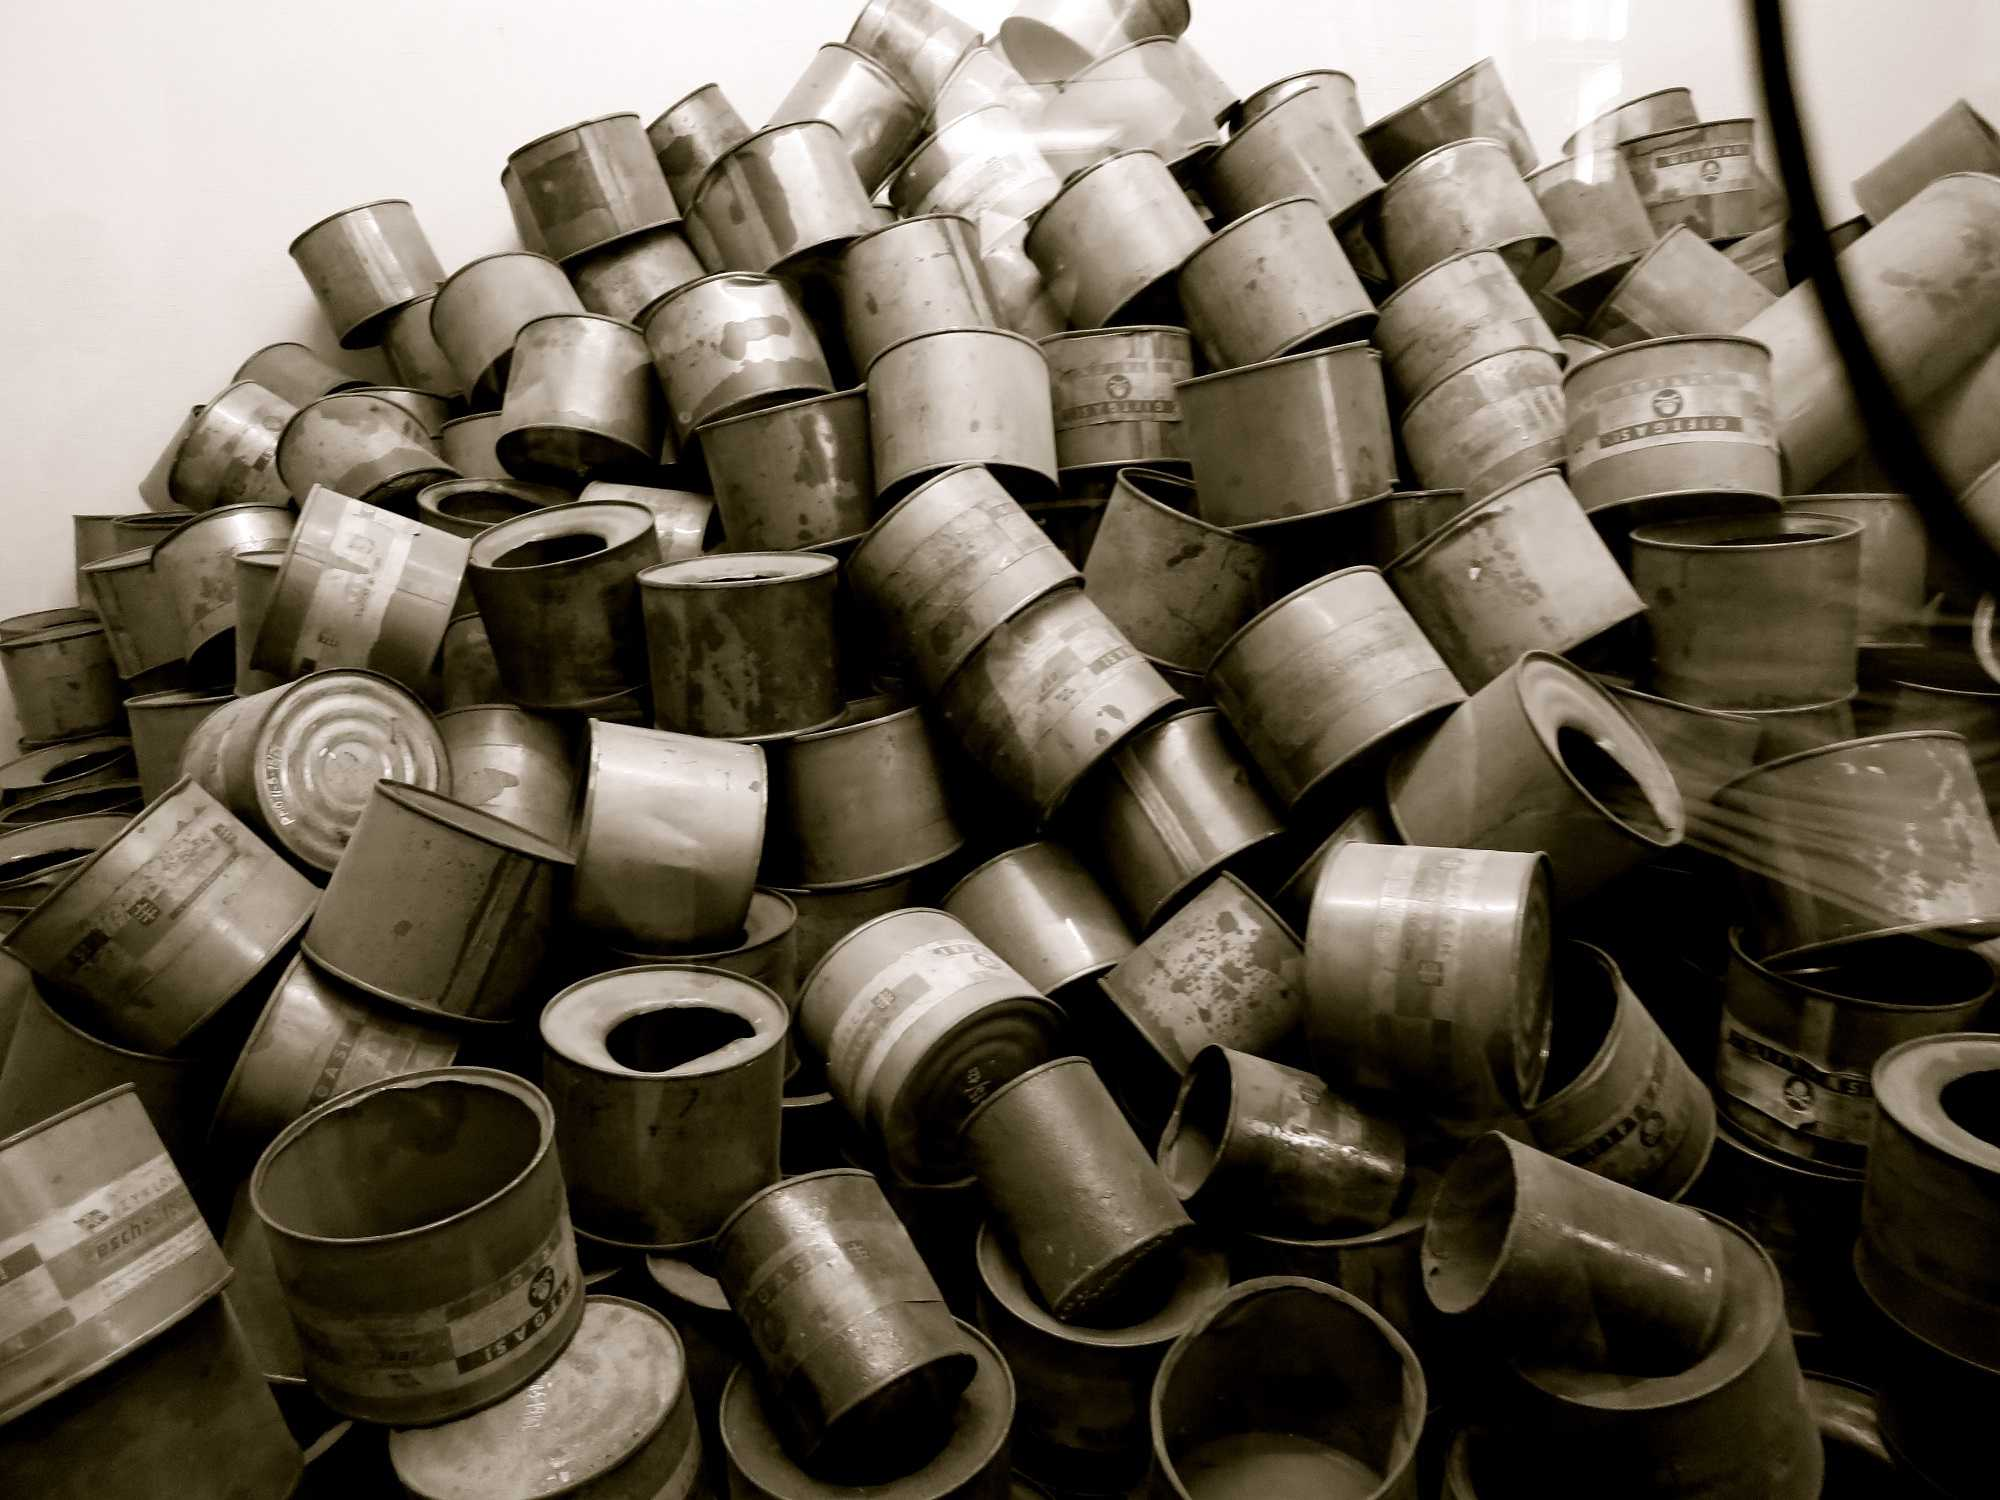 Empty canisters of ZyklonB, the deadly gas used at Auschwitz.